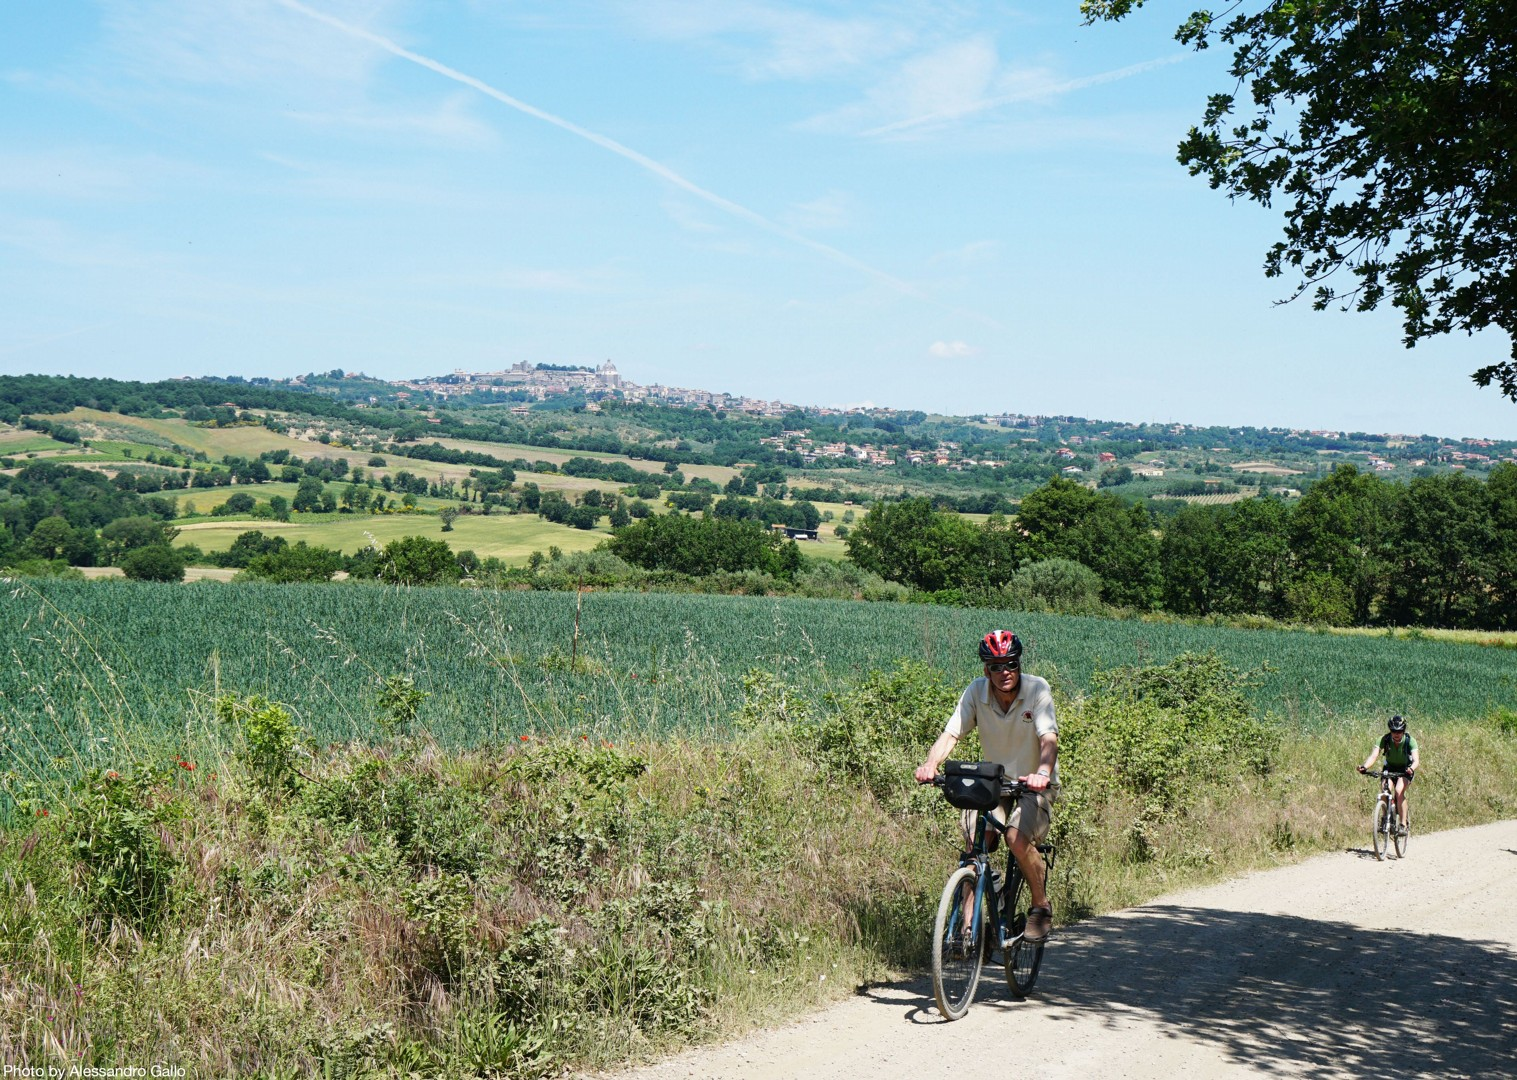 torgiano-italy-spirit-of-umbria-self-guided-leisure-cycling-holiday.JPG - Italy - Spirit of Umbria - Family Cycling